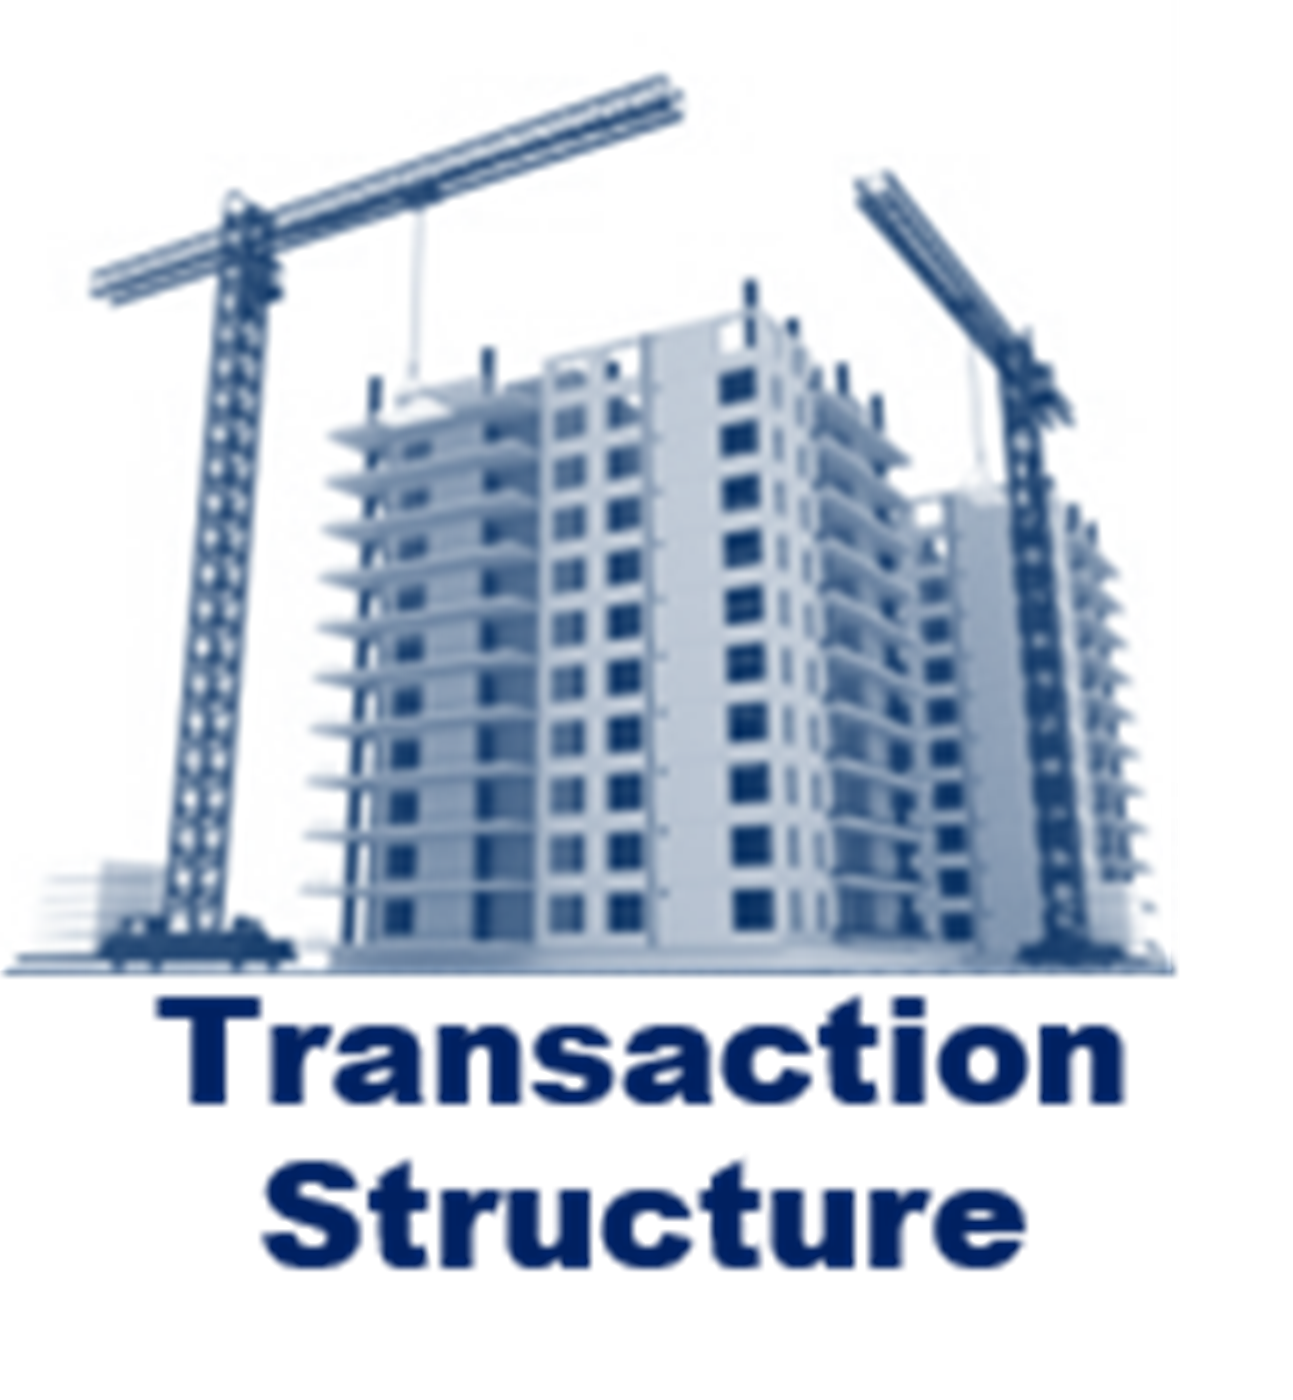 Deal Structures Today: Escrow and Employee Retention